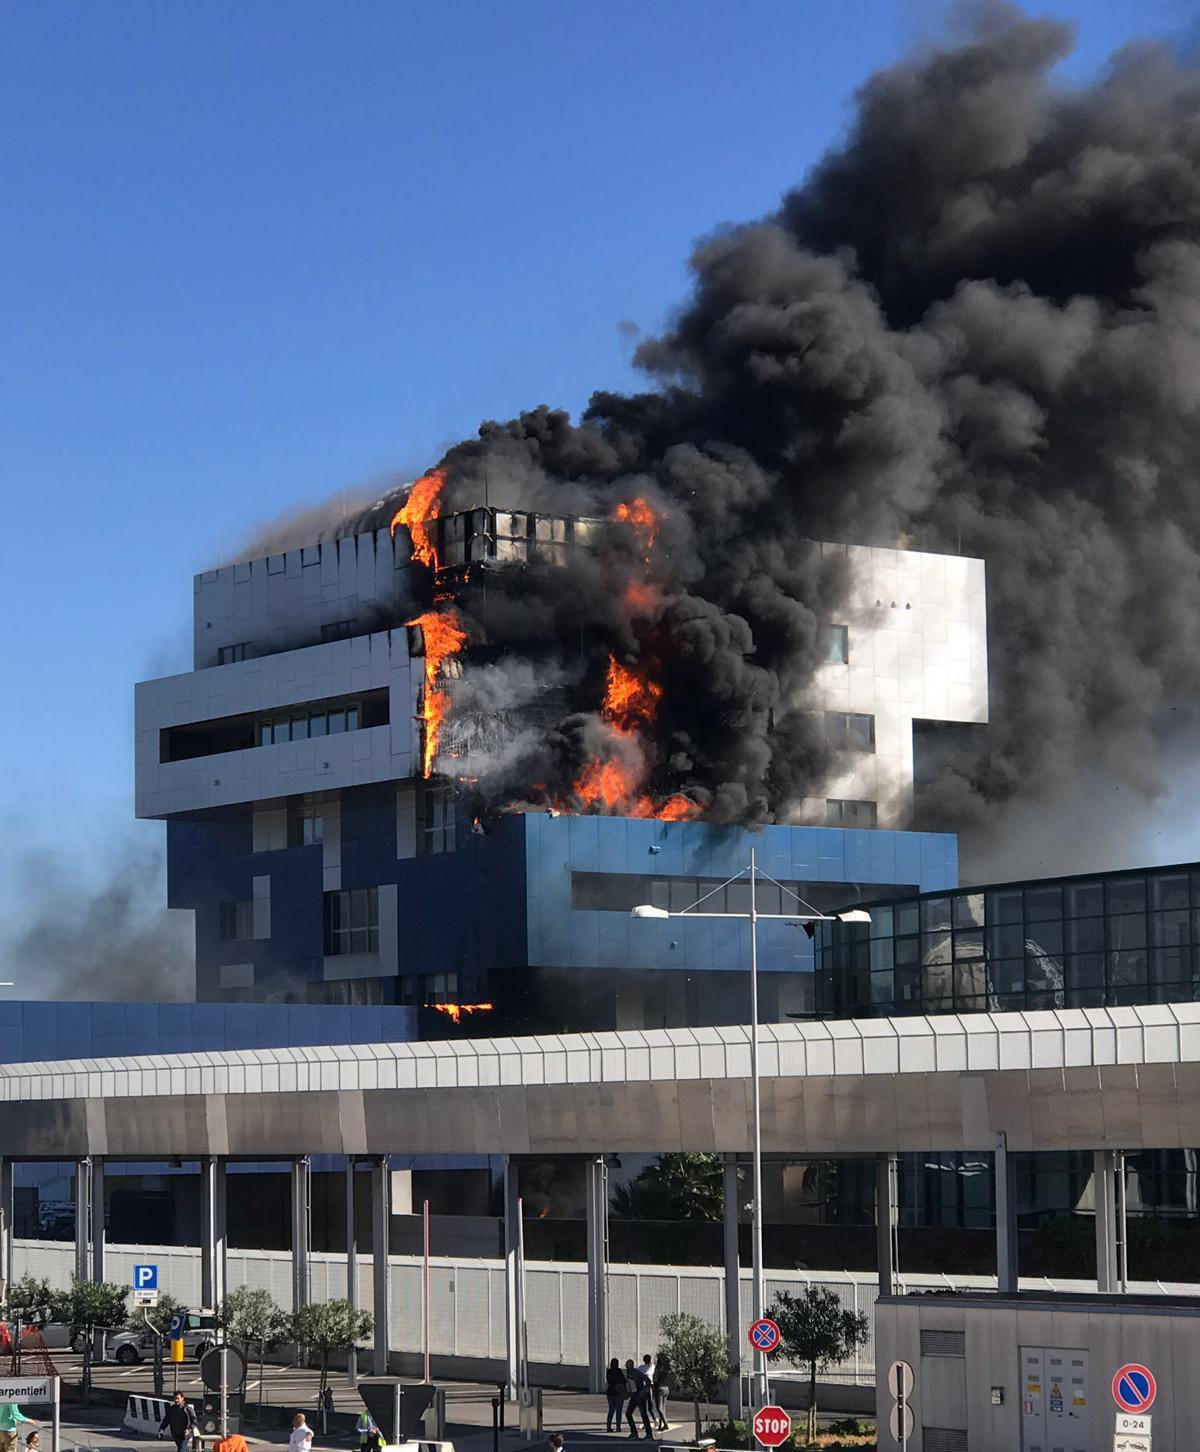 A few days before the storm, a fire had destroyed the new port authority building in Savona!